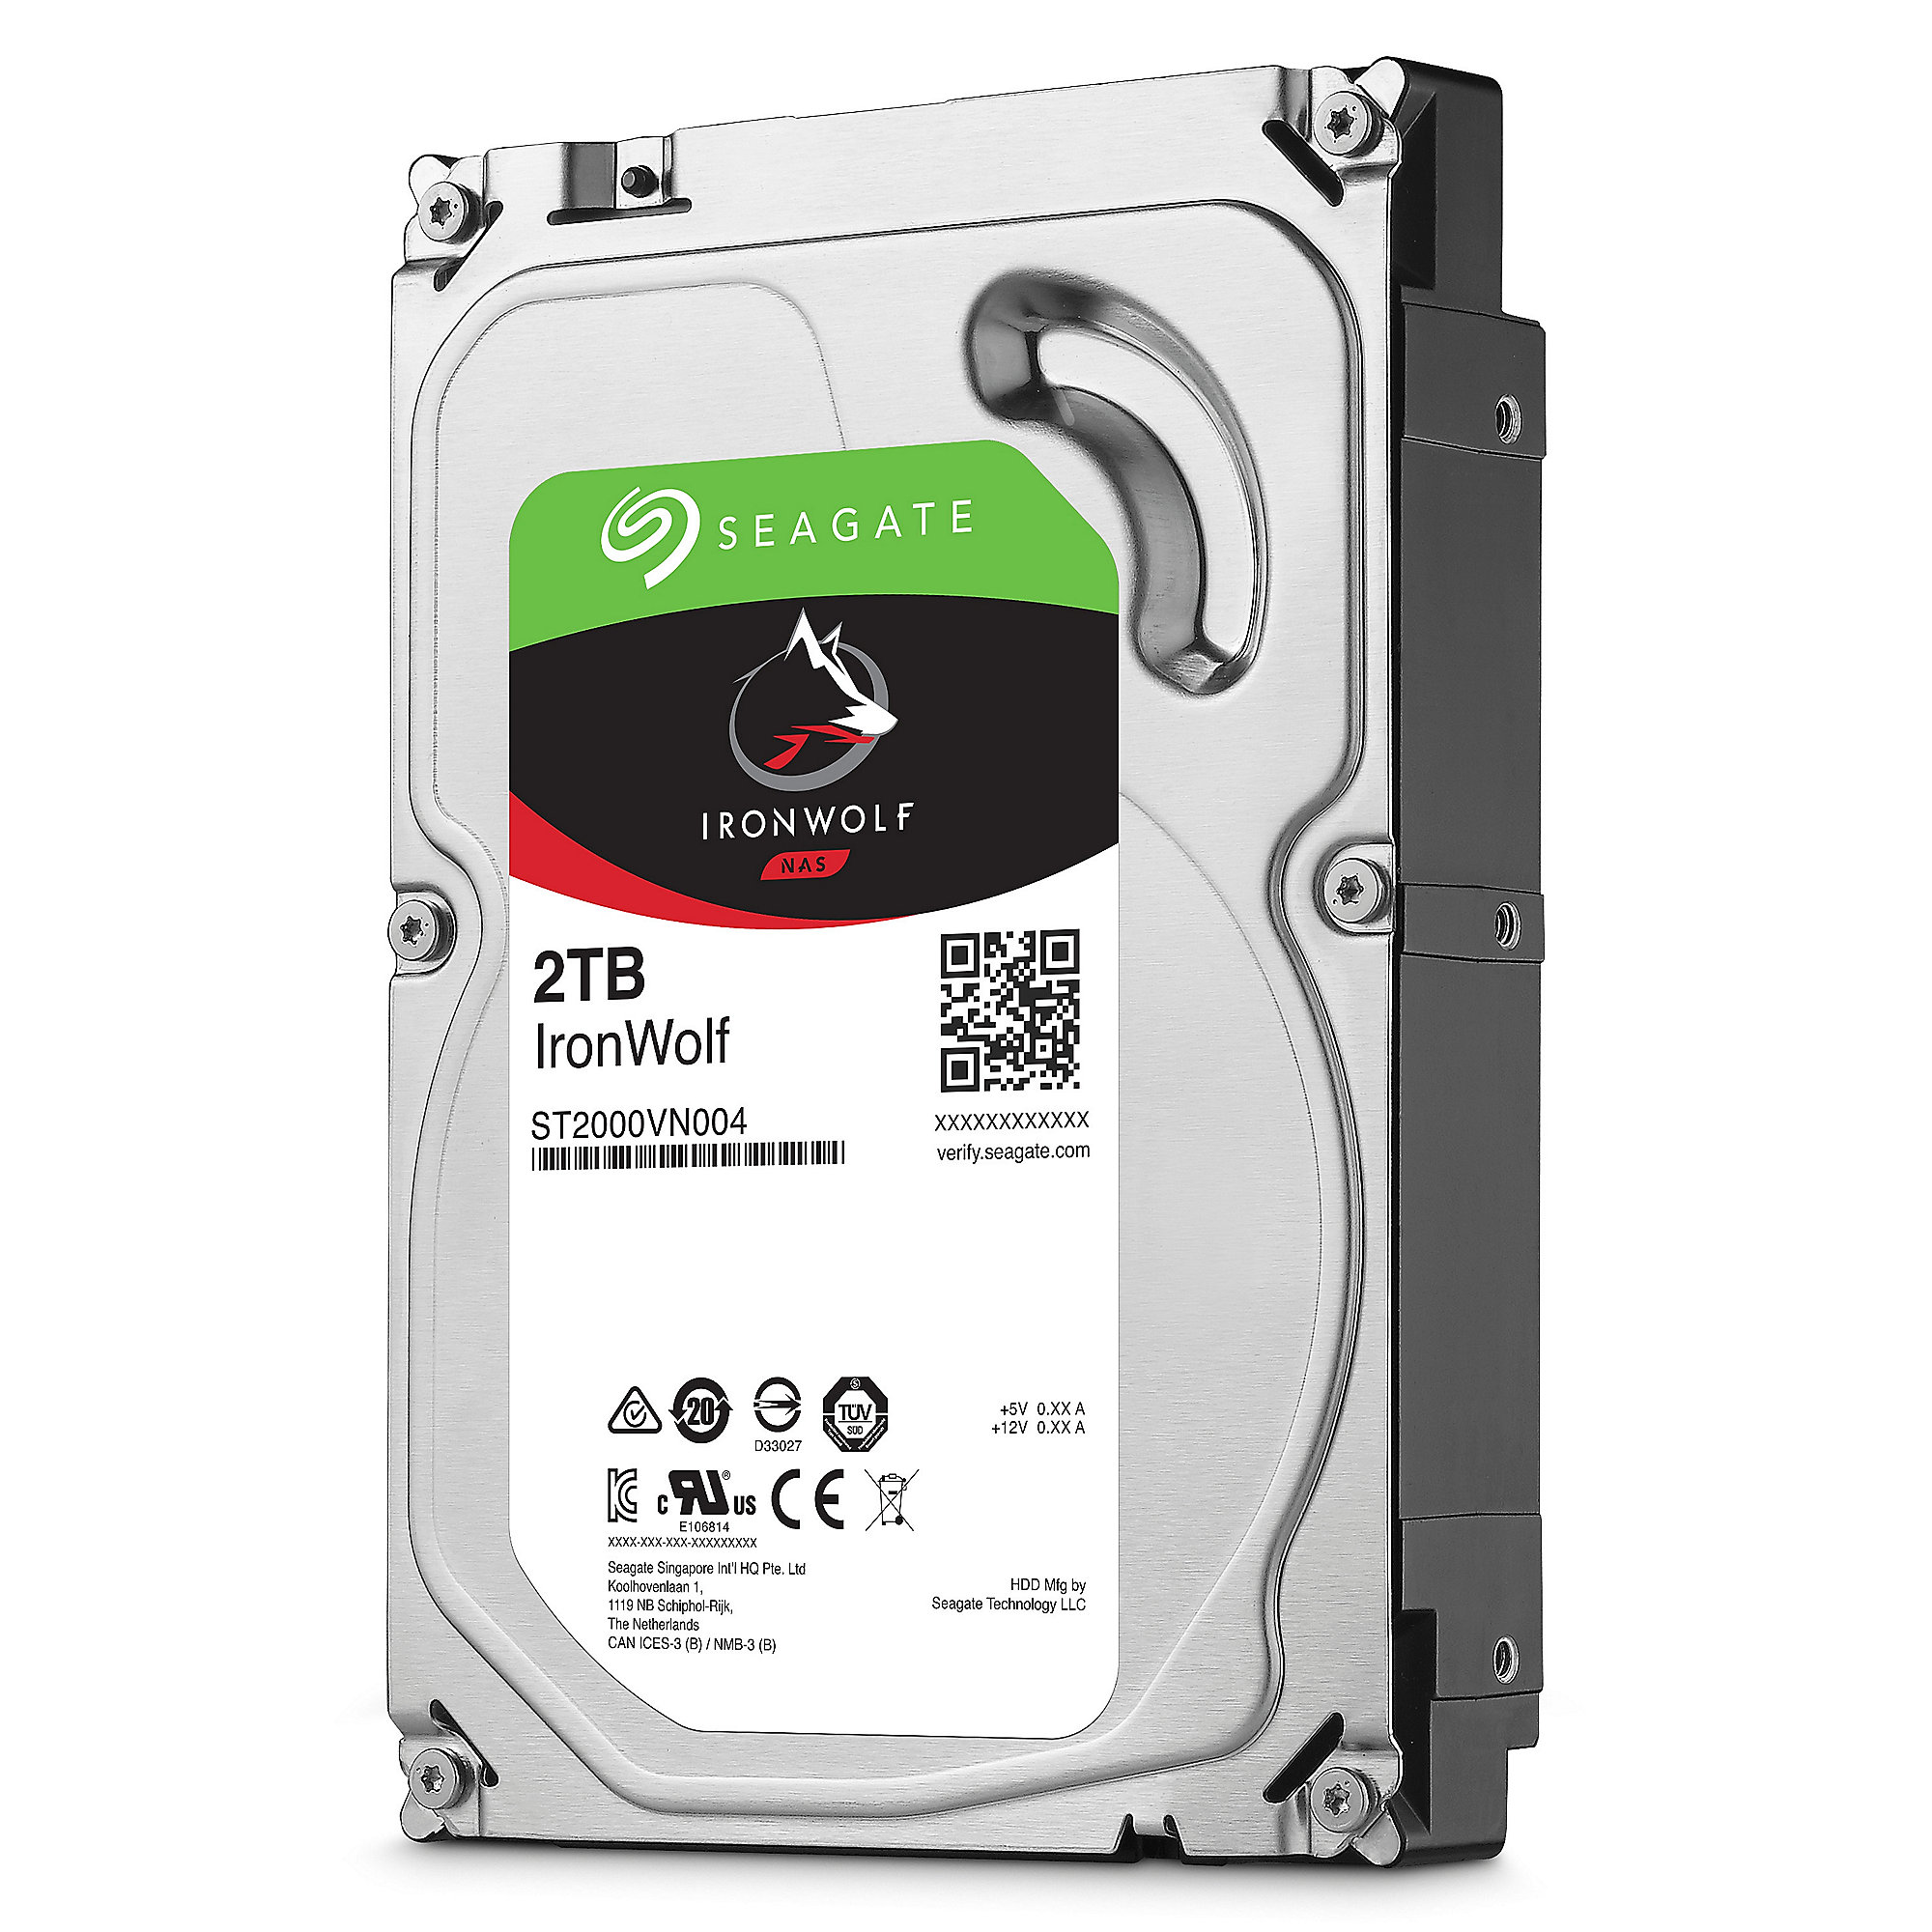 Seagate IronWolf NAS HDD ST2000VN004 - 2TB 5900rpm 64MB 3.5zoll SATA600